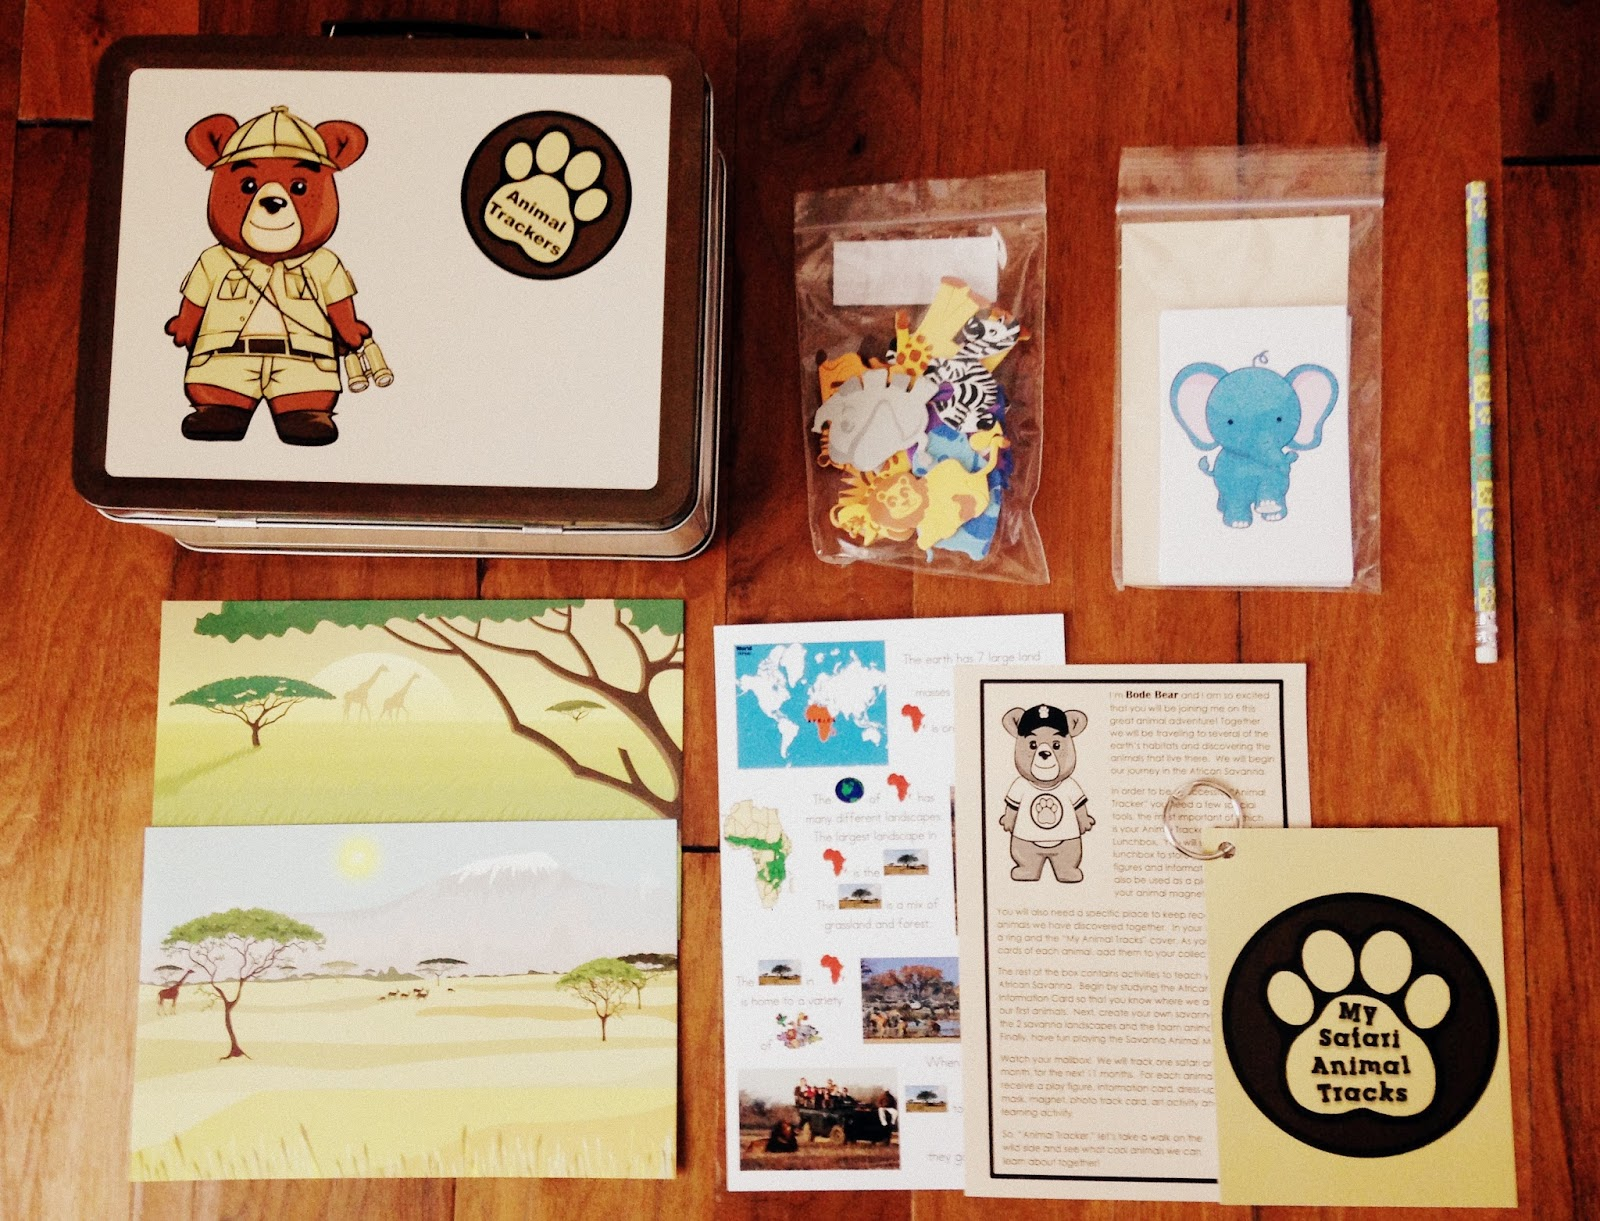 Plan To Happy Animal Trackers Subscription Box For Kids